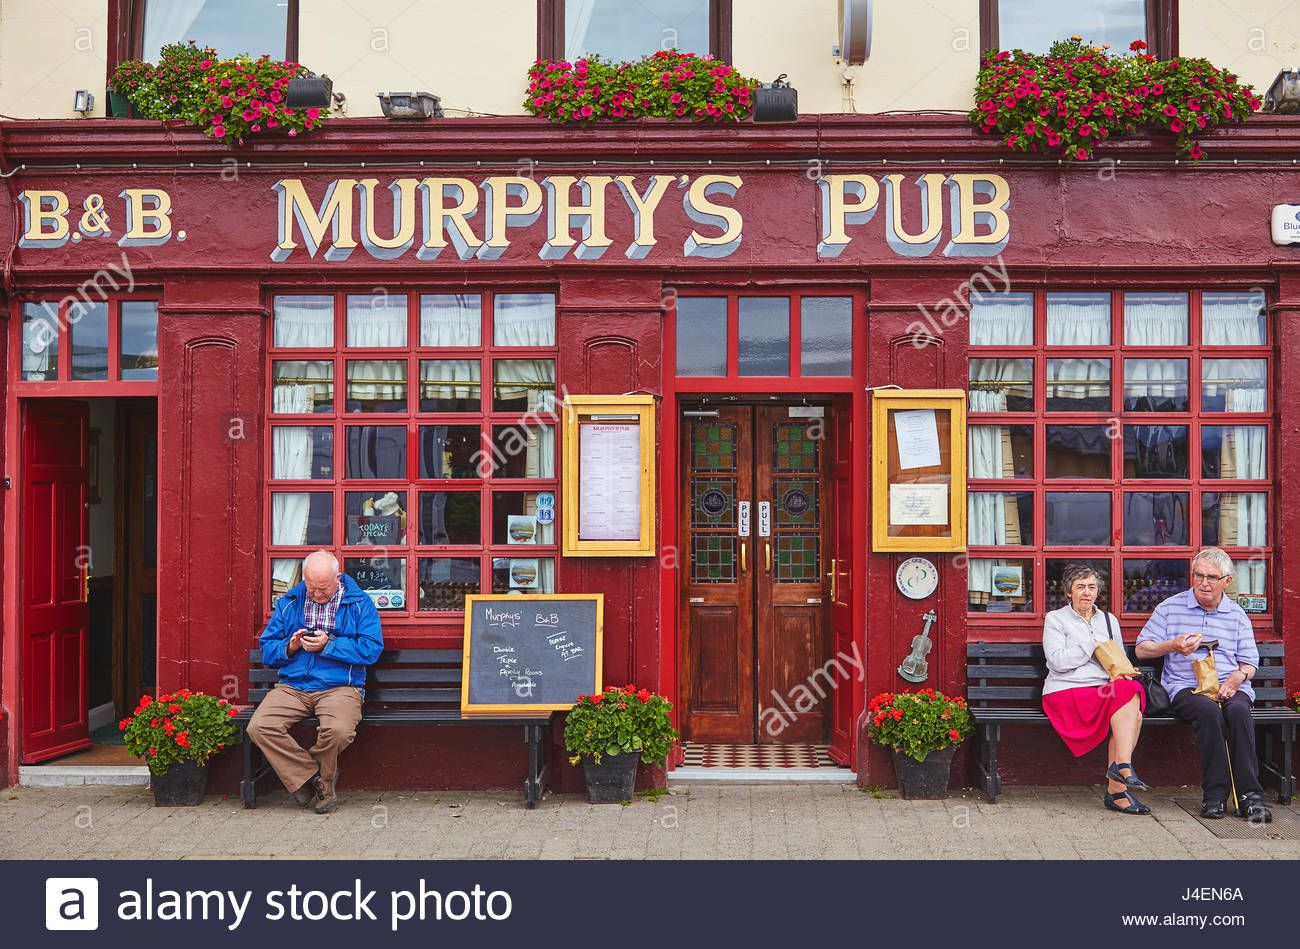 Pin By Mark Silverman On Pubs In 2020 Pub Stock Photos Republic Of Ireland